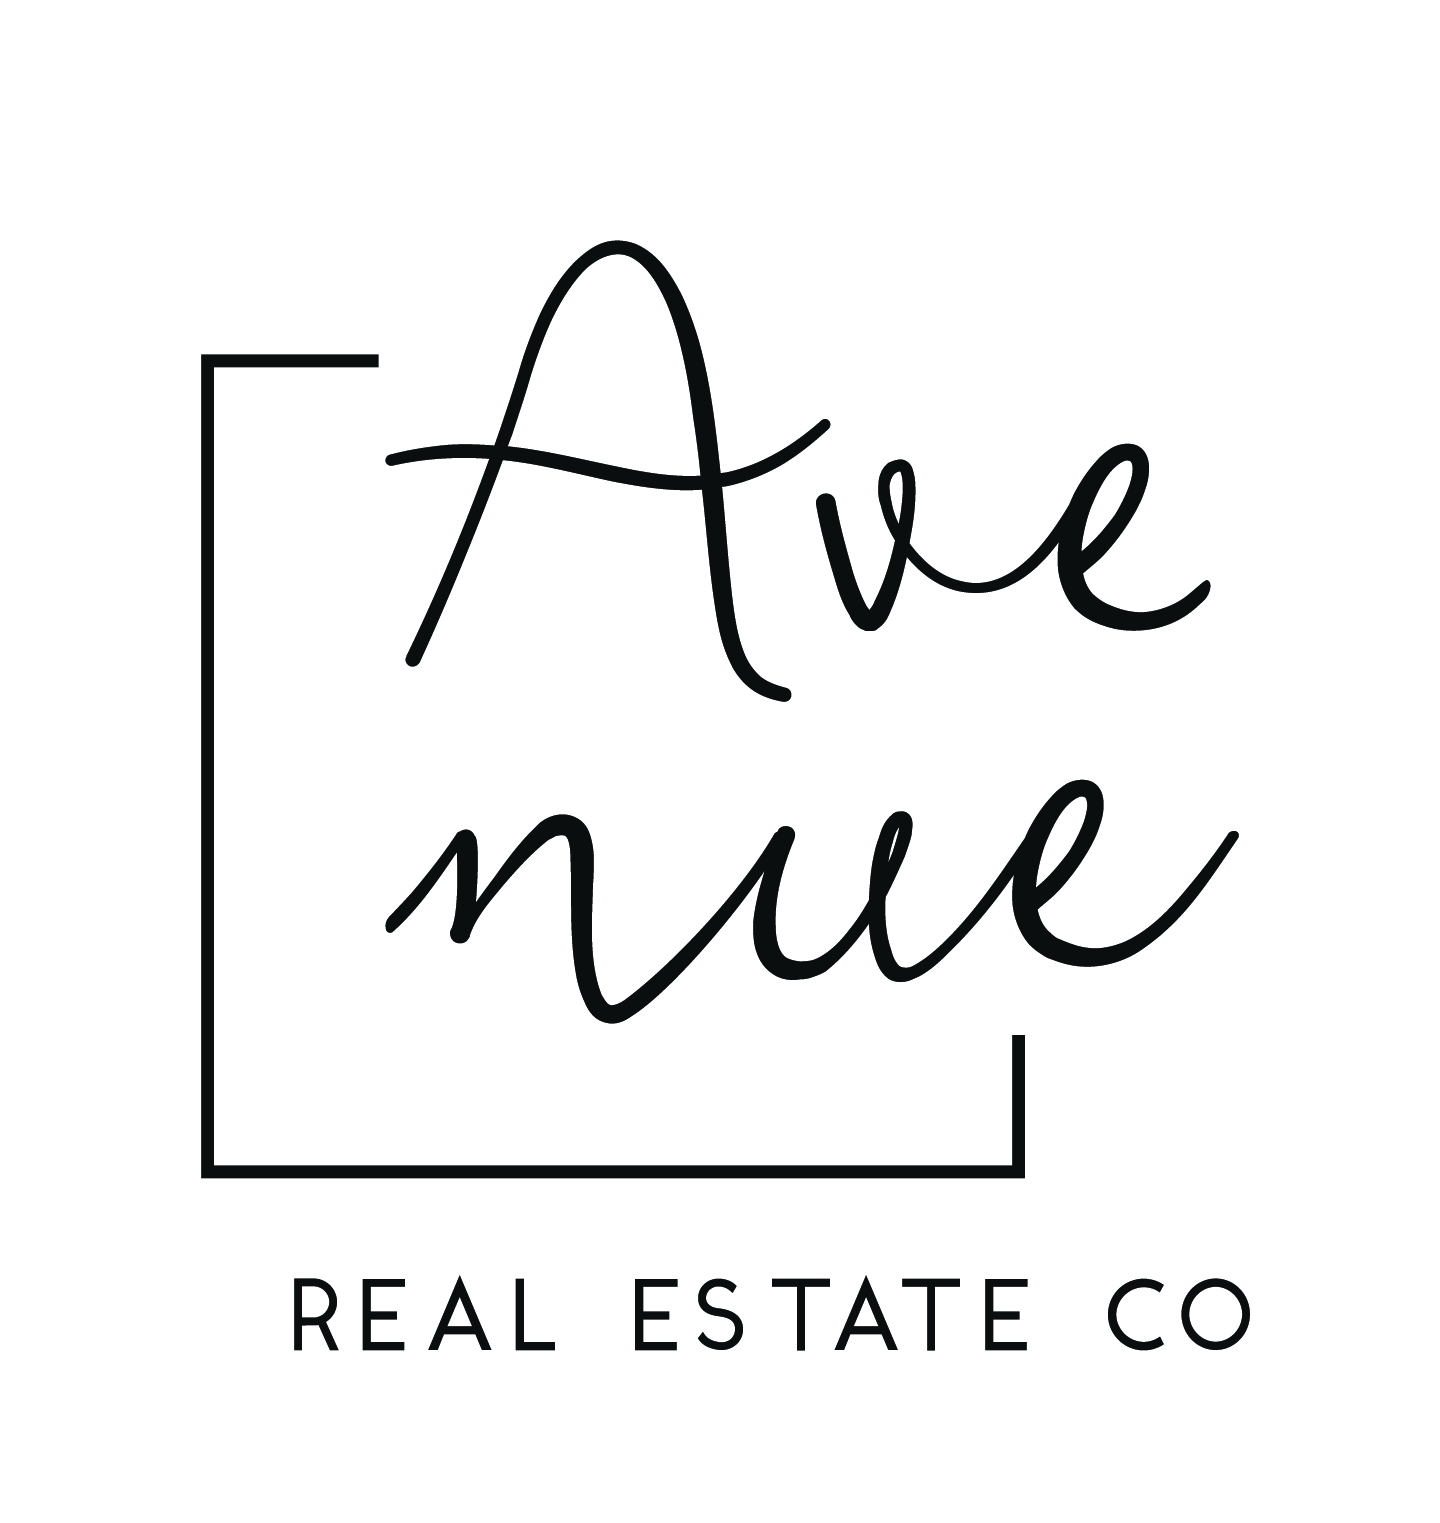 Avenue Real Estate Co.